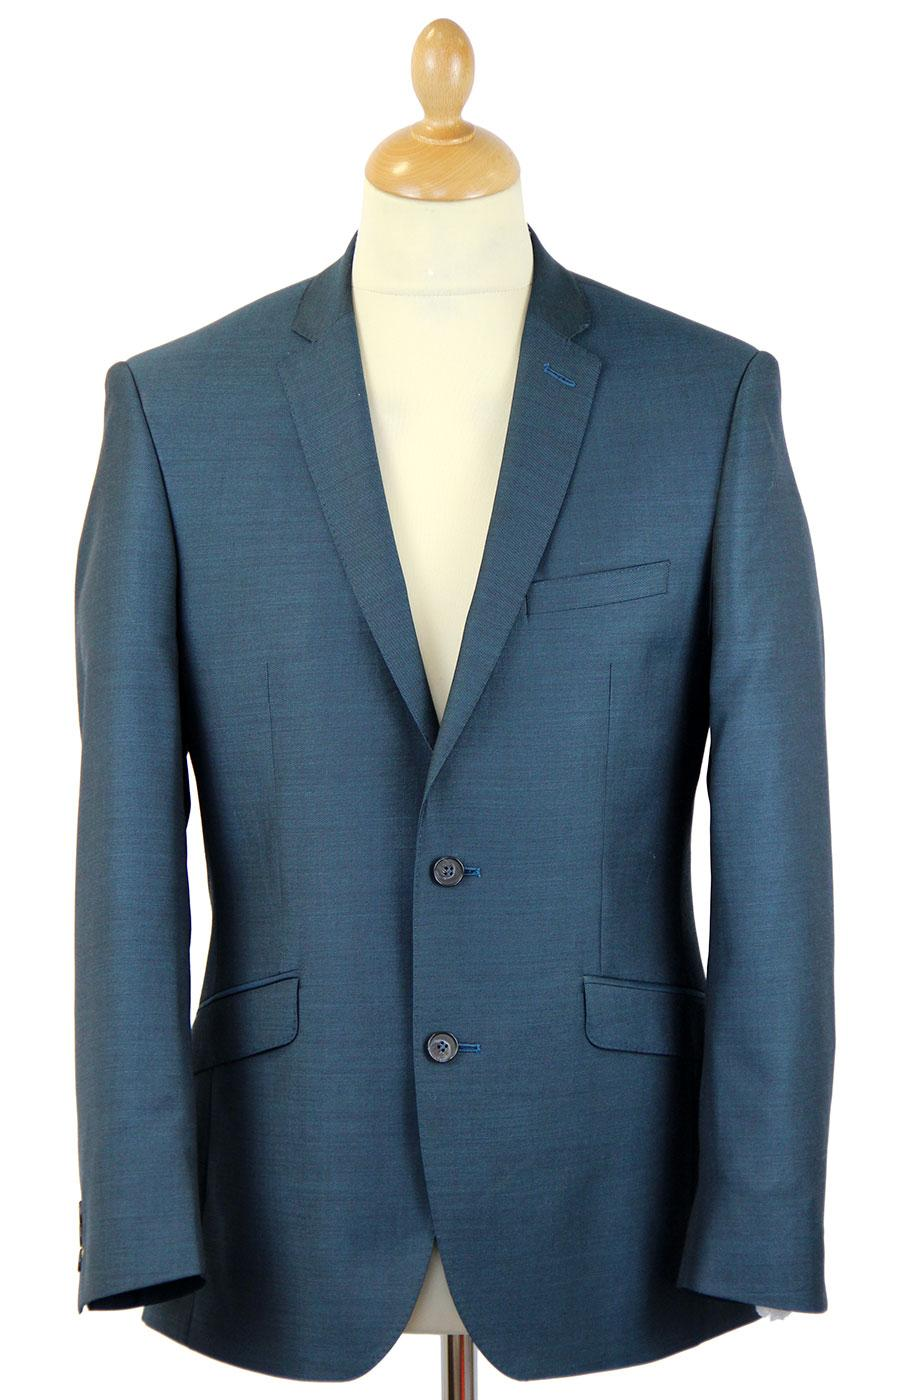 Retro 60s Mod 2 Button Tailored Suit Jacket TEAL